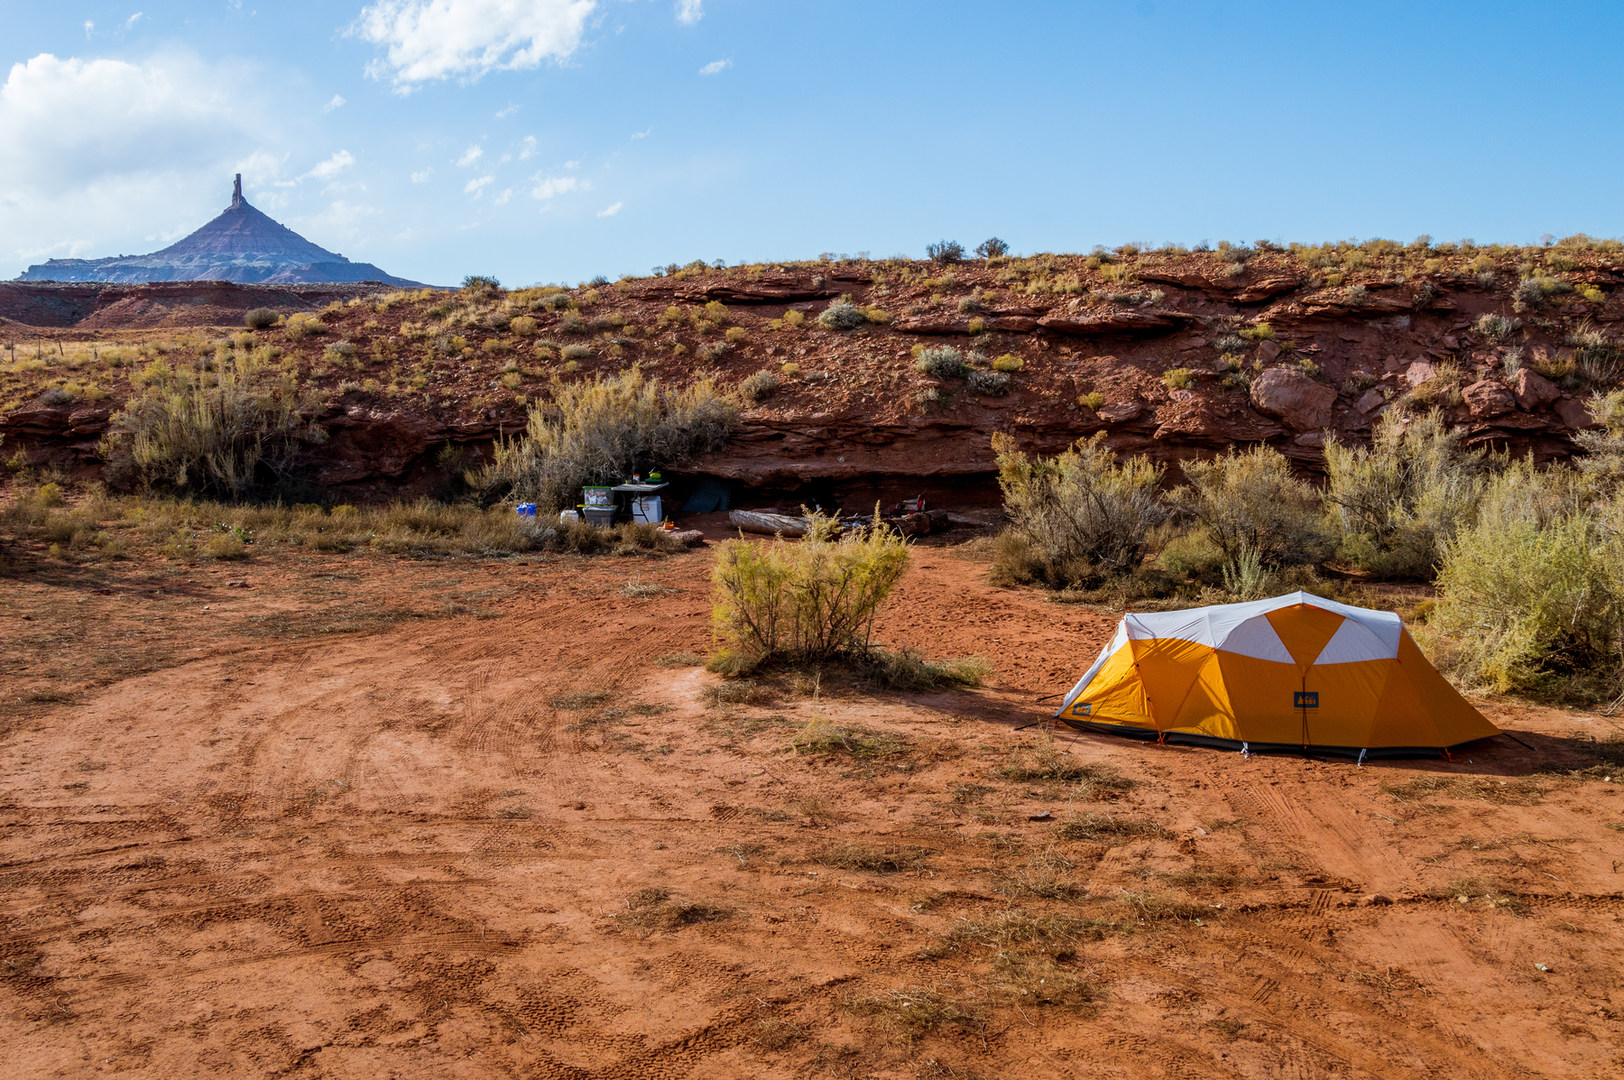 Dispersed camping on public lands outdoor project there are many good spots for dispersed camping at indian creek in utah publicscrutiny Choice Image